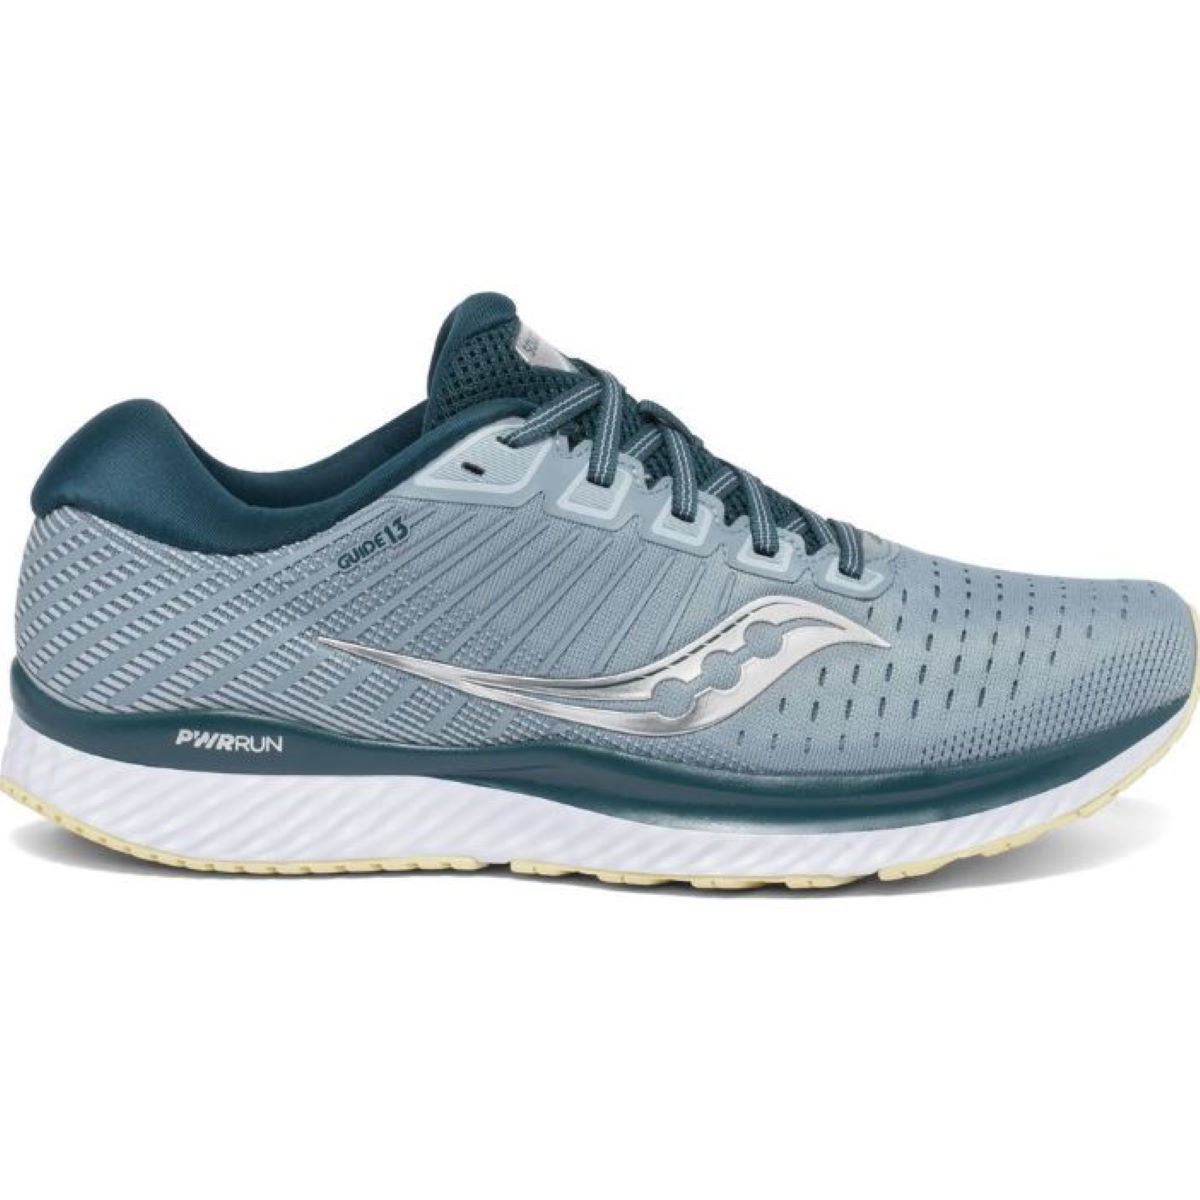 Saucony Guide 13 Running Shoes - UK 9.5 Mineral/Deep Teal